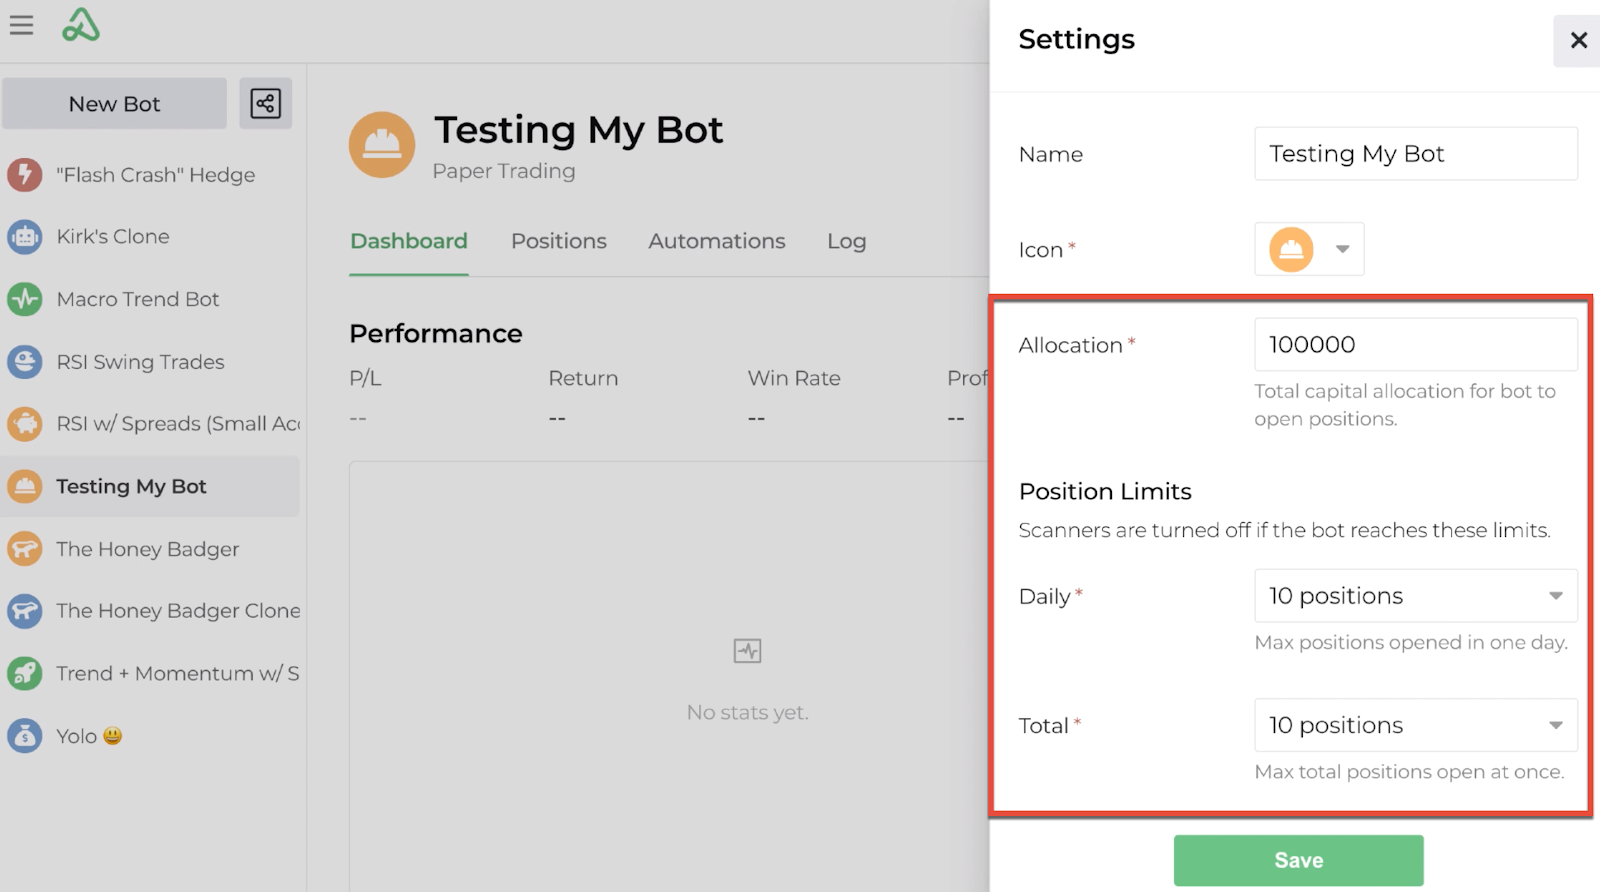 Screenshot highlighting the allocation and position limits of the bot